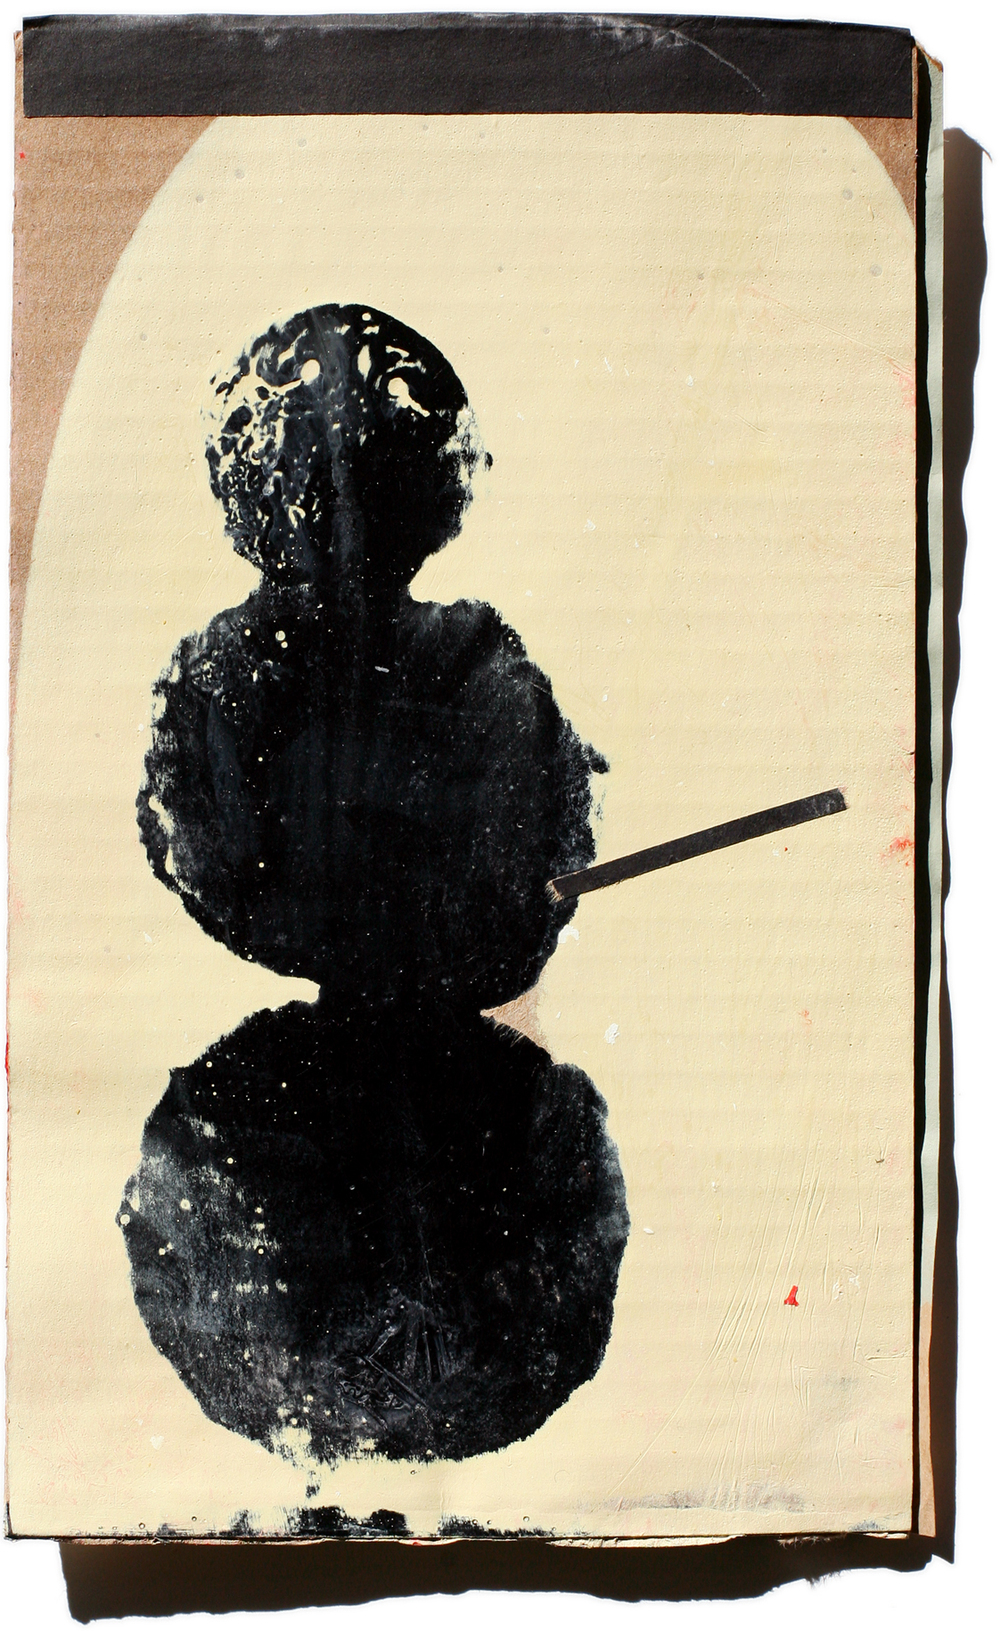 Snowman 04, mixed media on cardboard